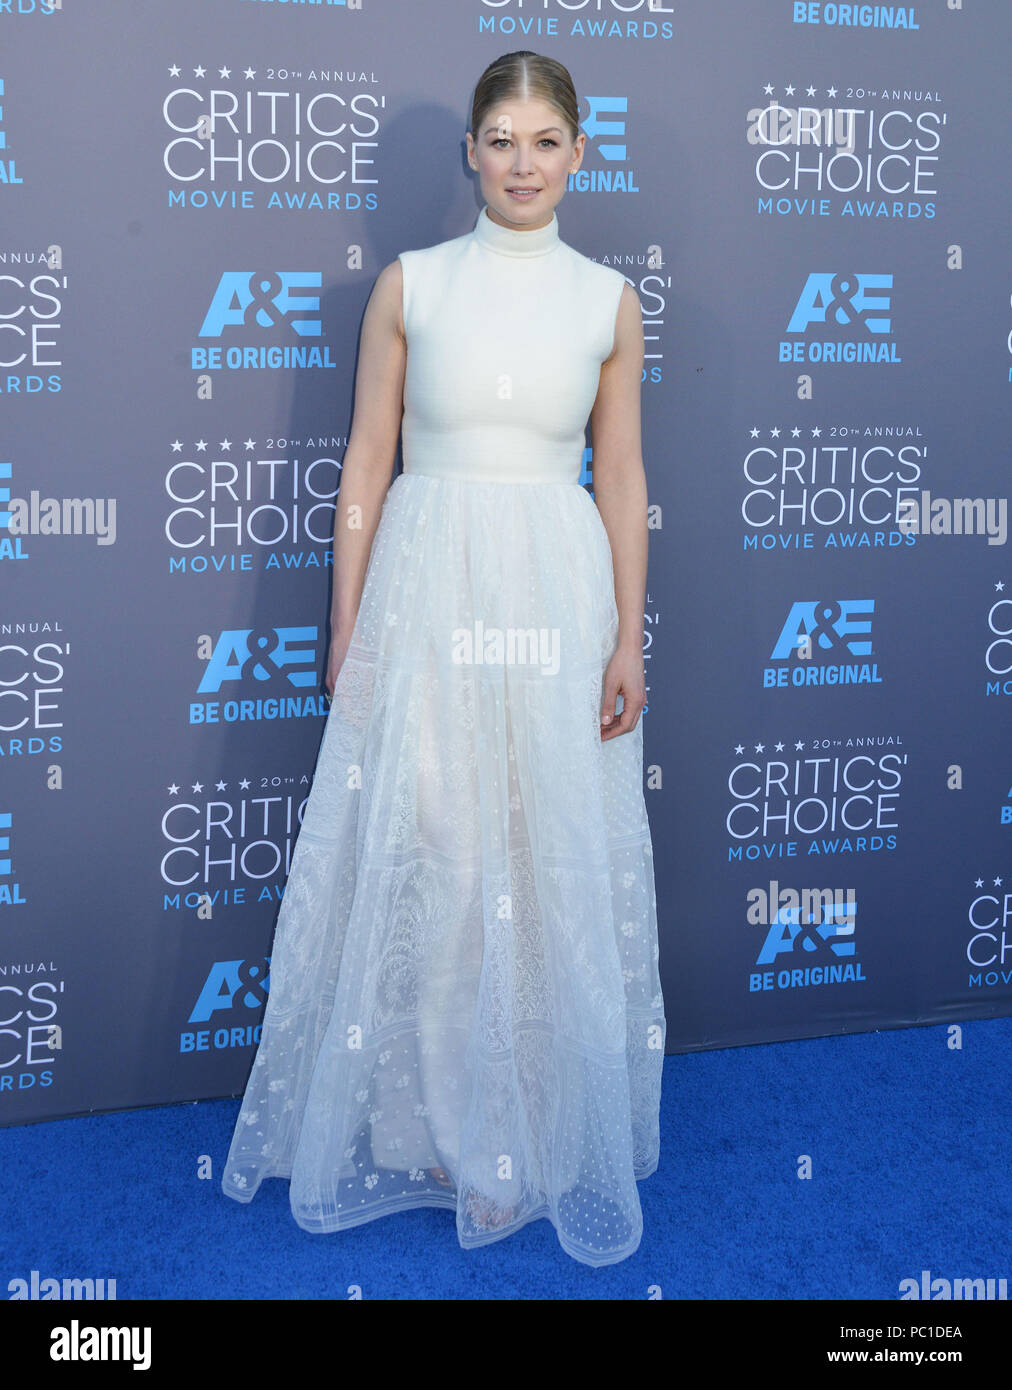 Rosamund Pike 122 at the 2015 Critics' Choice Movie Awards at the The Palladium theatre in Los Angeles. January 15, 2015Rosamund Pike 122  Event in Hollywood Life - California, Red Carpet Event, USA, Film Industry, Celebrities, Photography, Bestof, Arts Culture and Entertainment, Topix Celebrities fashion, Best of, Hollywood Life, Event in Hollywood Life - California, Red Carpet and backstage, movie celebrities, TV celebrities, Music celebrities, Topix, Bestof, Arts Culture and Entertainment, vertical, one person, Photography,   Fashion, full length, 2014 inquiry tsuni@Gamma-USA.com , Credit T Stock Photo